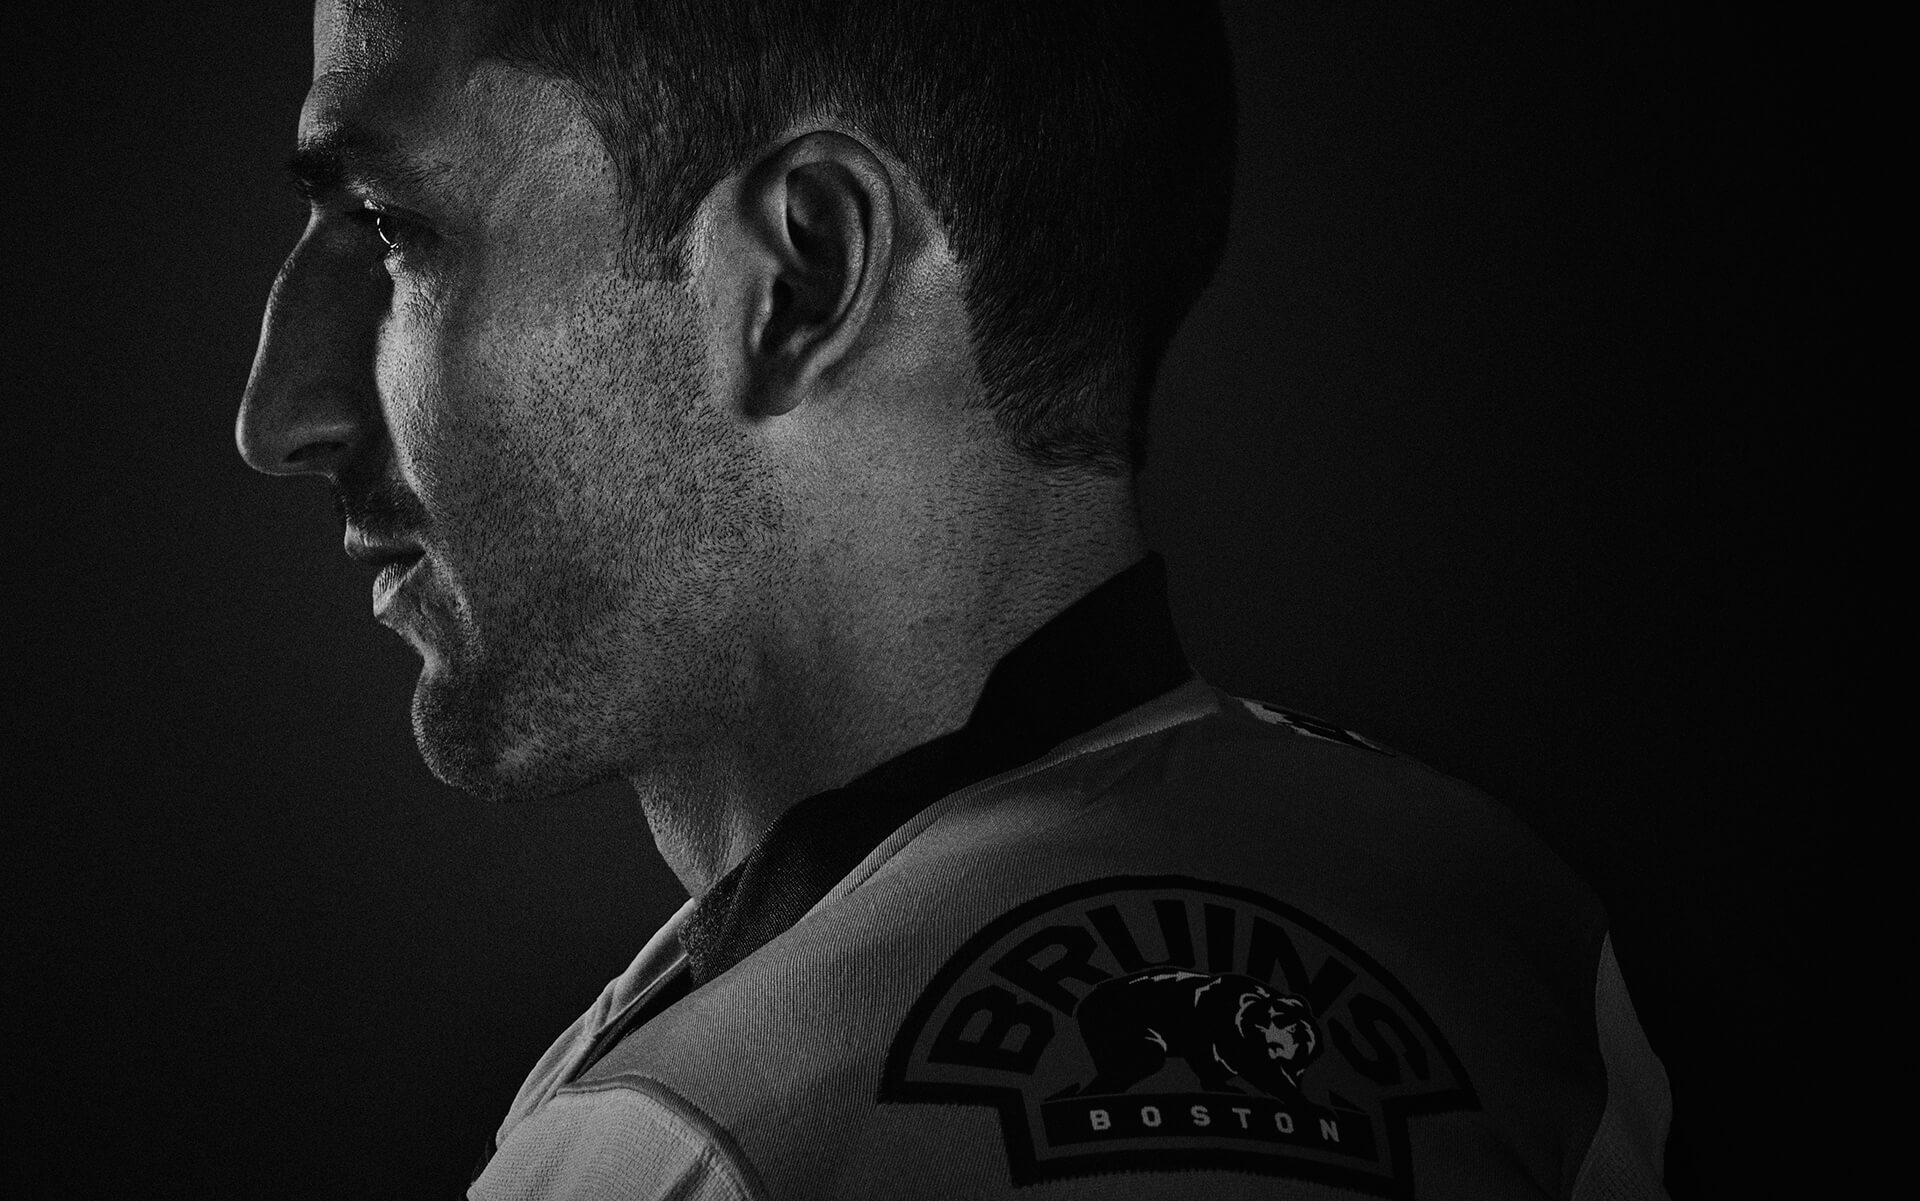 Unified Content, Unified Content Toronto, Aaron Cobb, Visa, Athletes, Patrice Bergeron, Bruins, Dramatic, Action, Headshot, Advertising, Black and White,